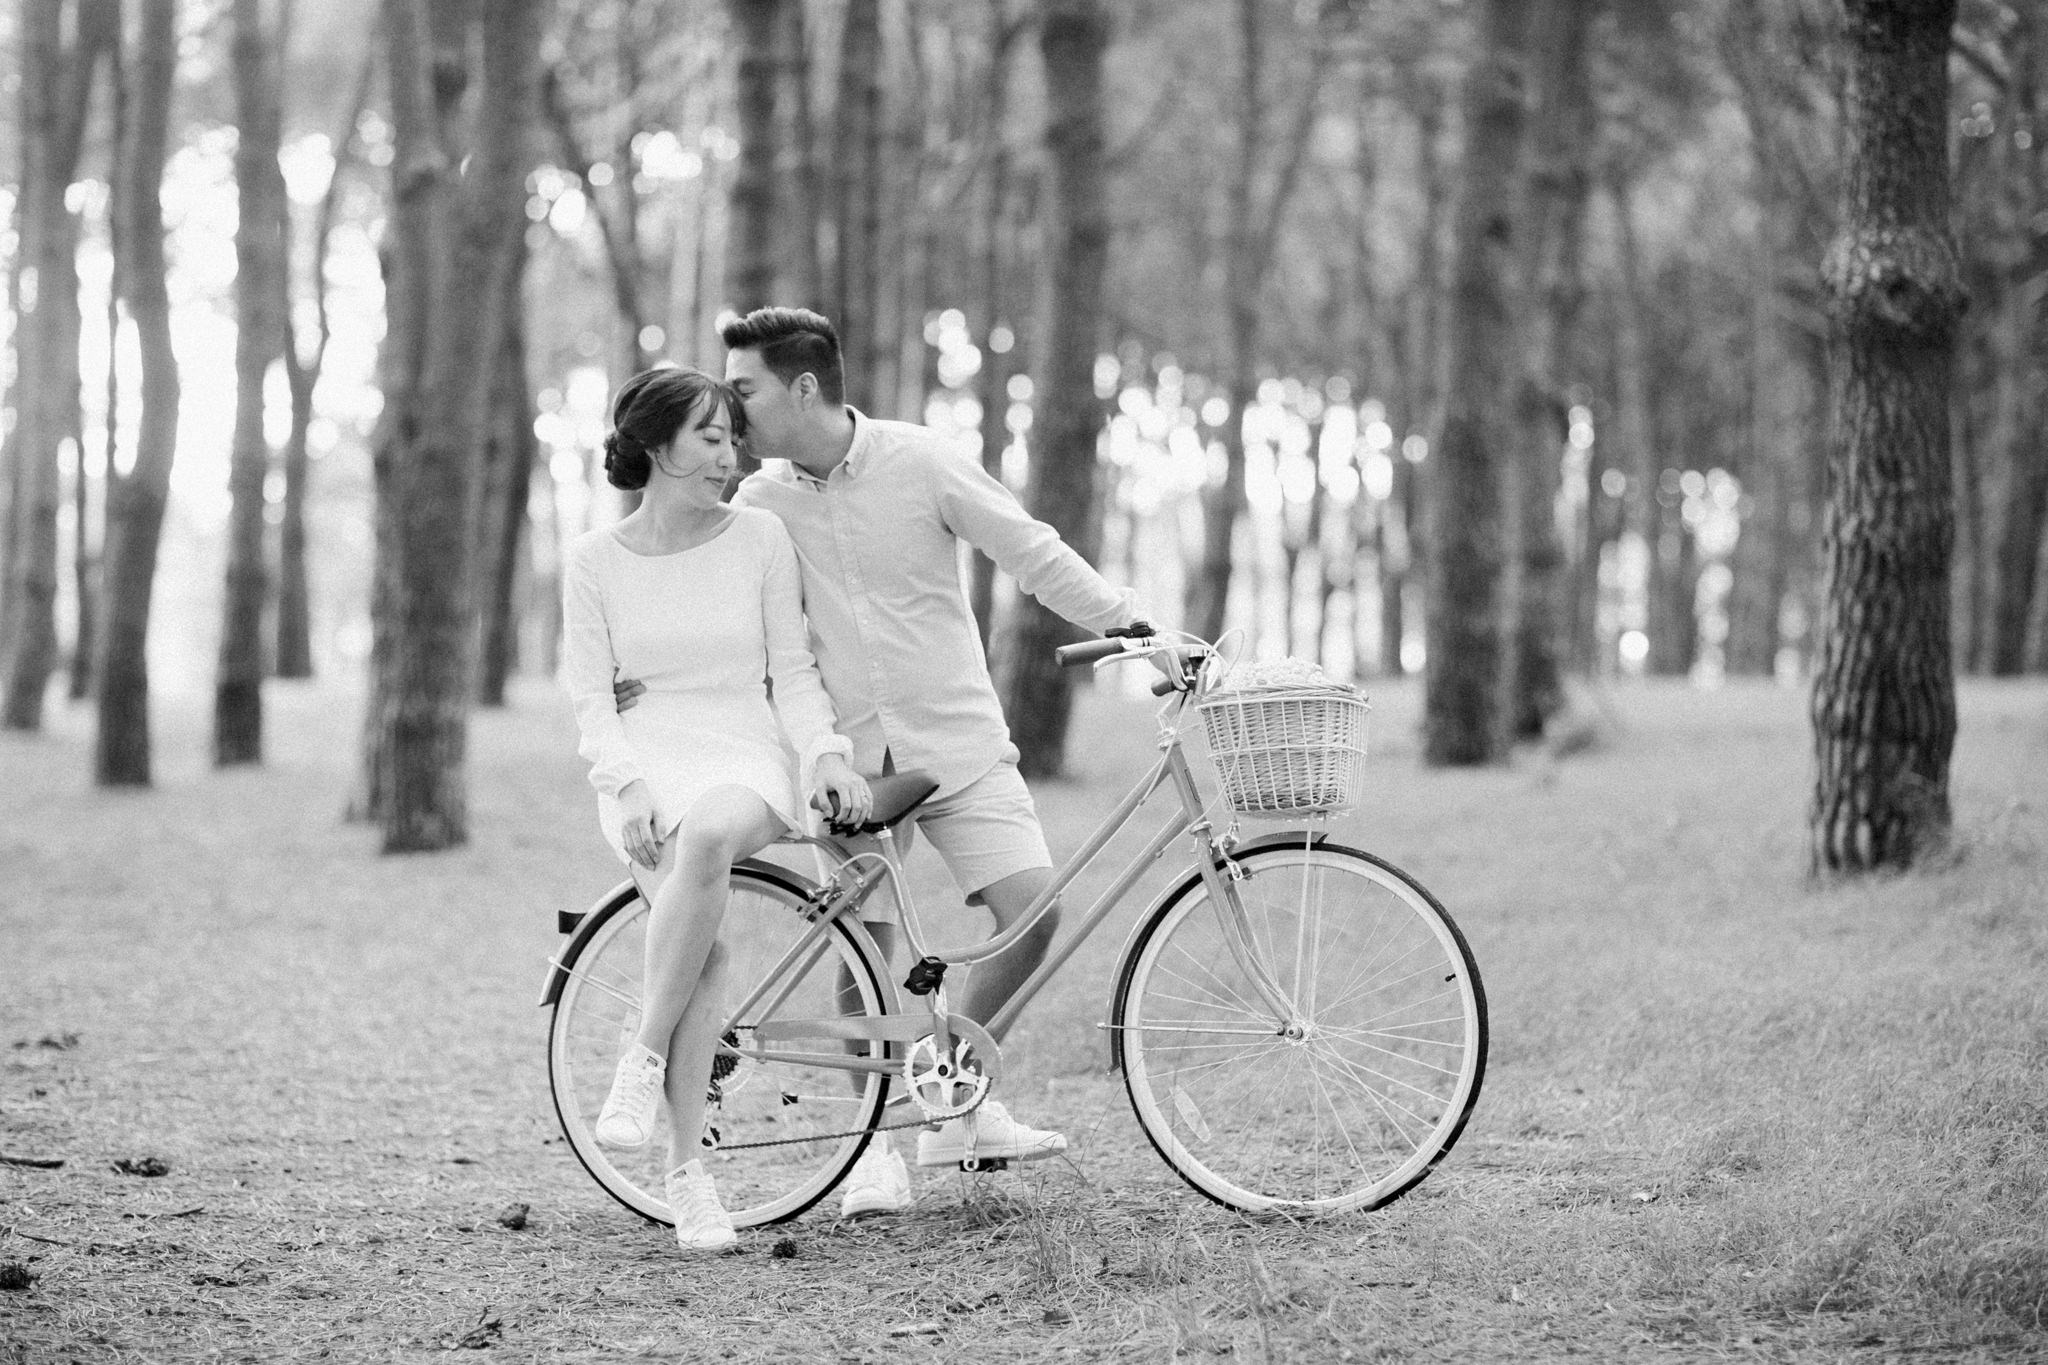 Anna + Nick : Bicycle Engagement | Centennial Park